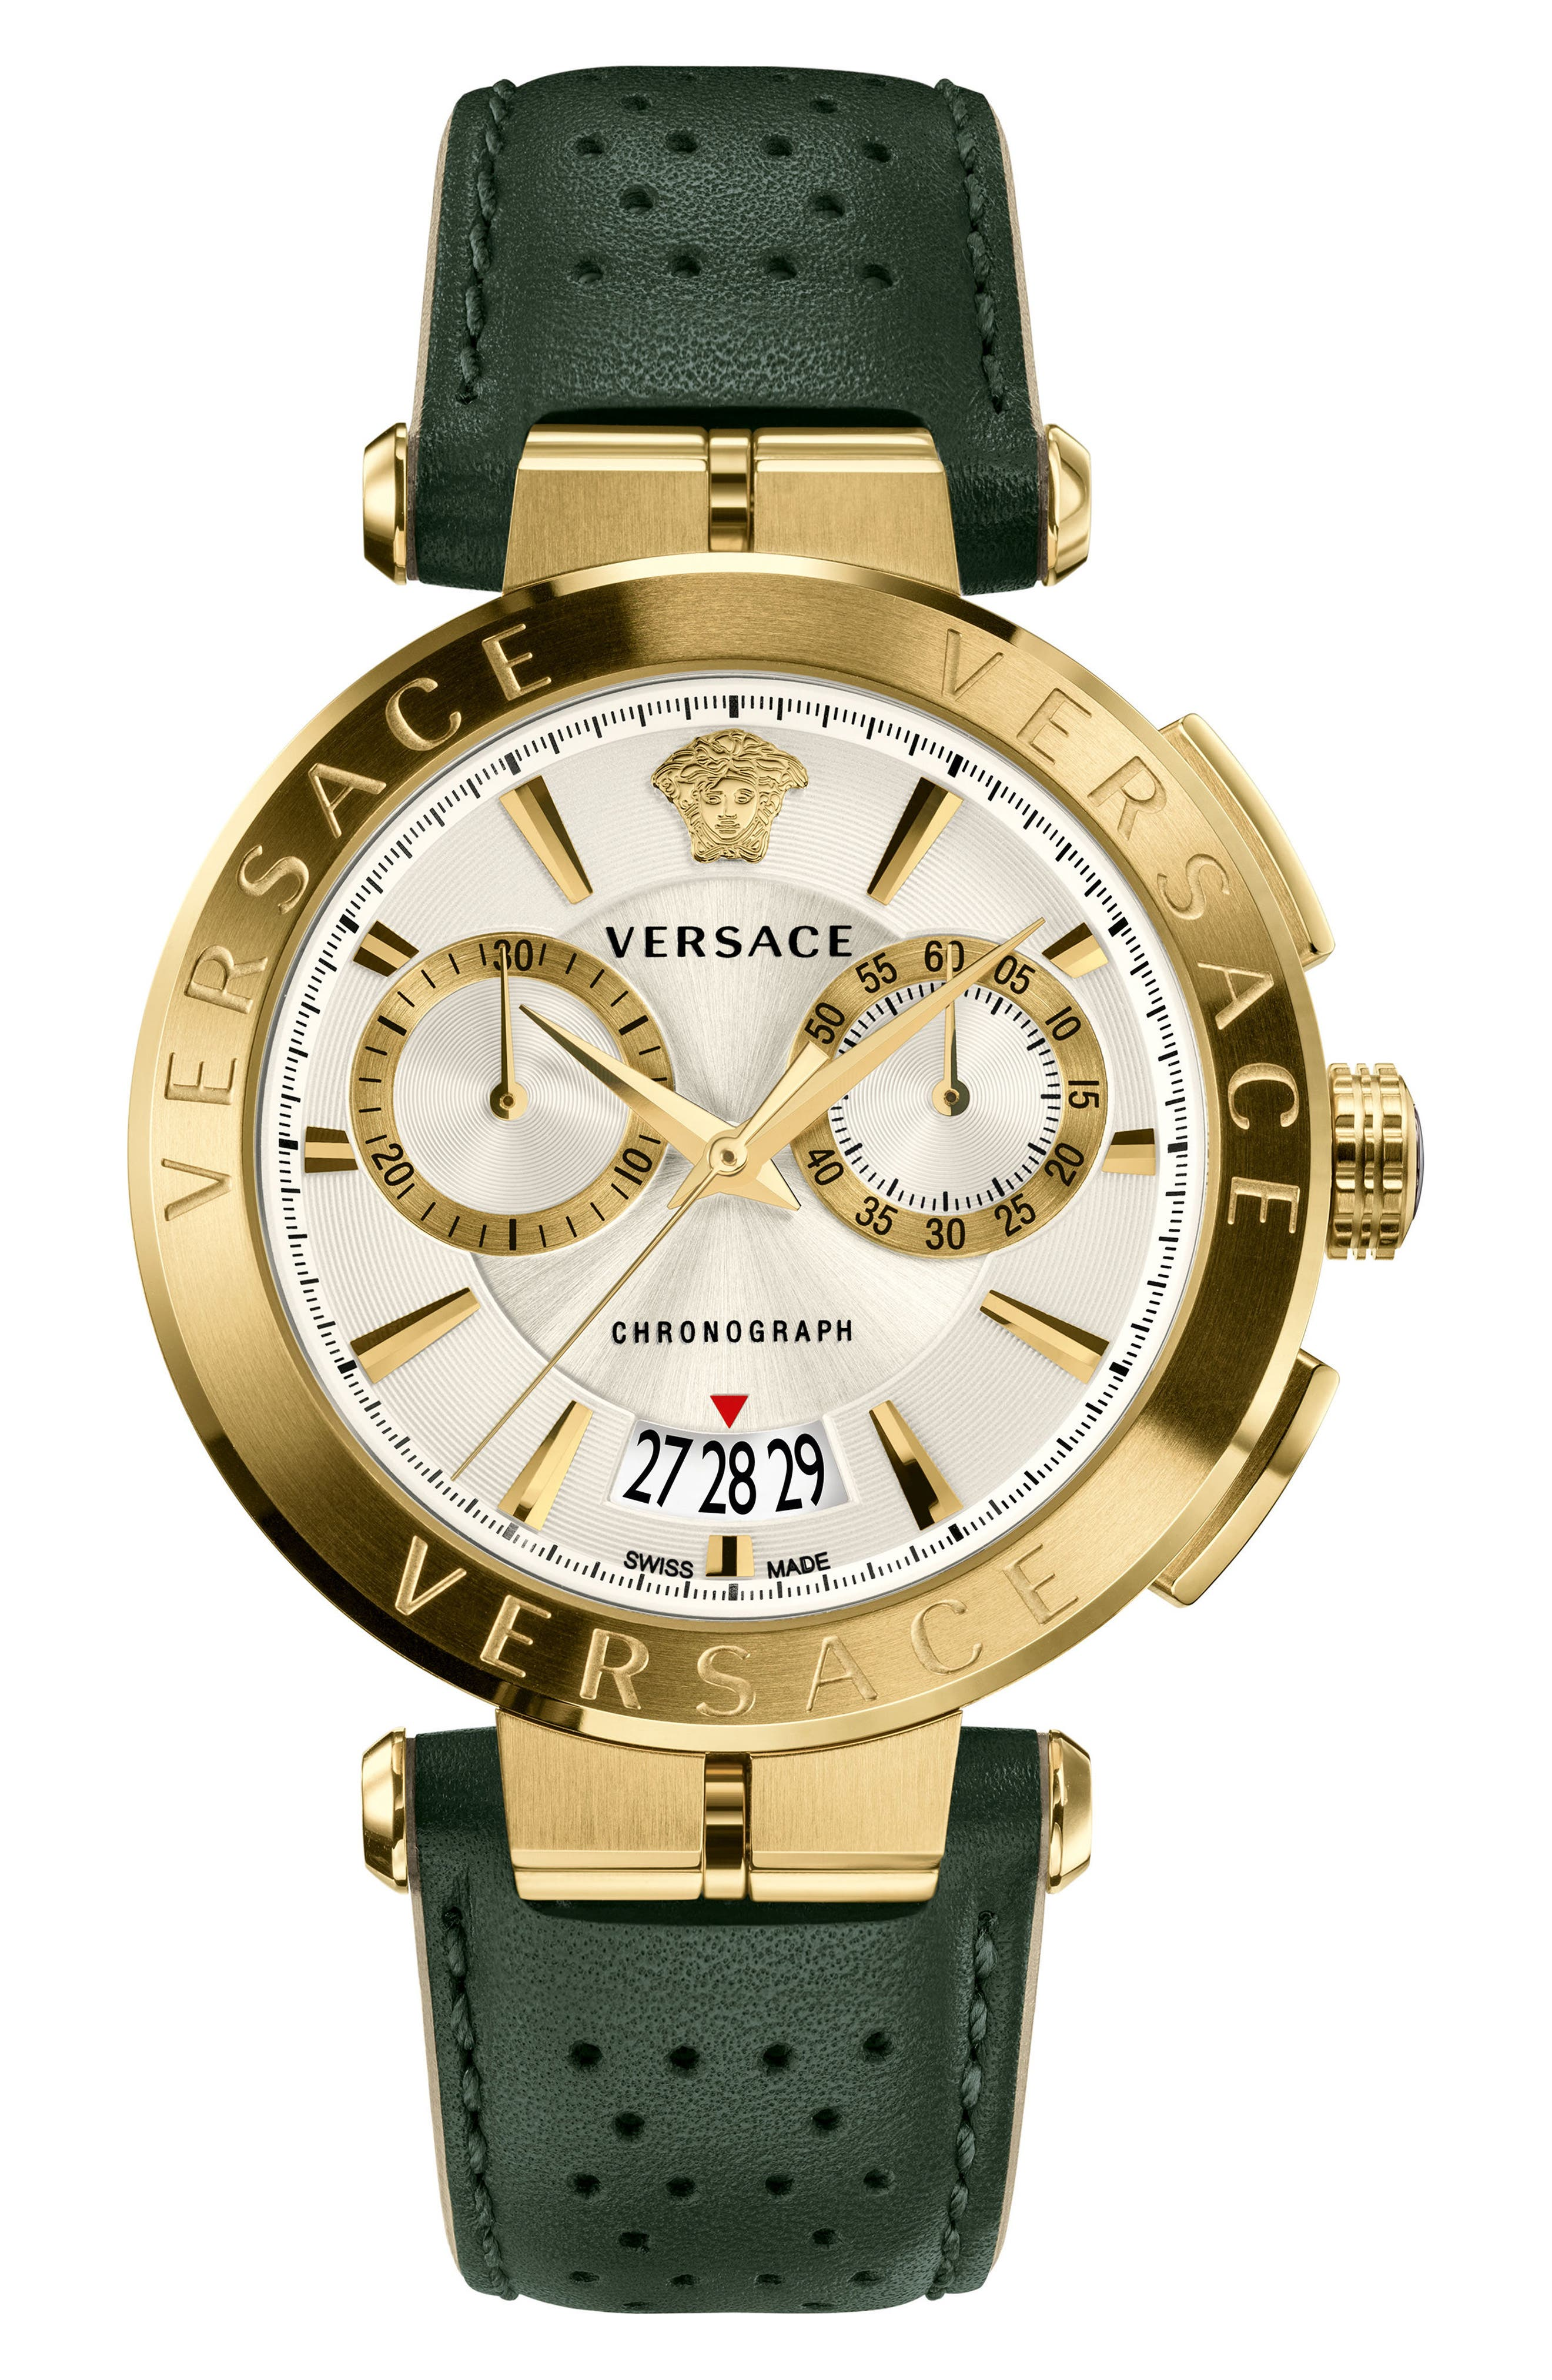 VERSACE, Aion Chronograph Leather Strap Watch, 45mm, Main thumbnail 1, color, GREY/ SILVER/ GOLD